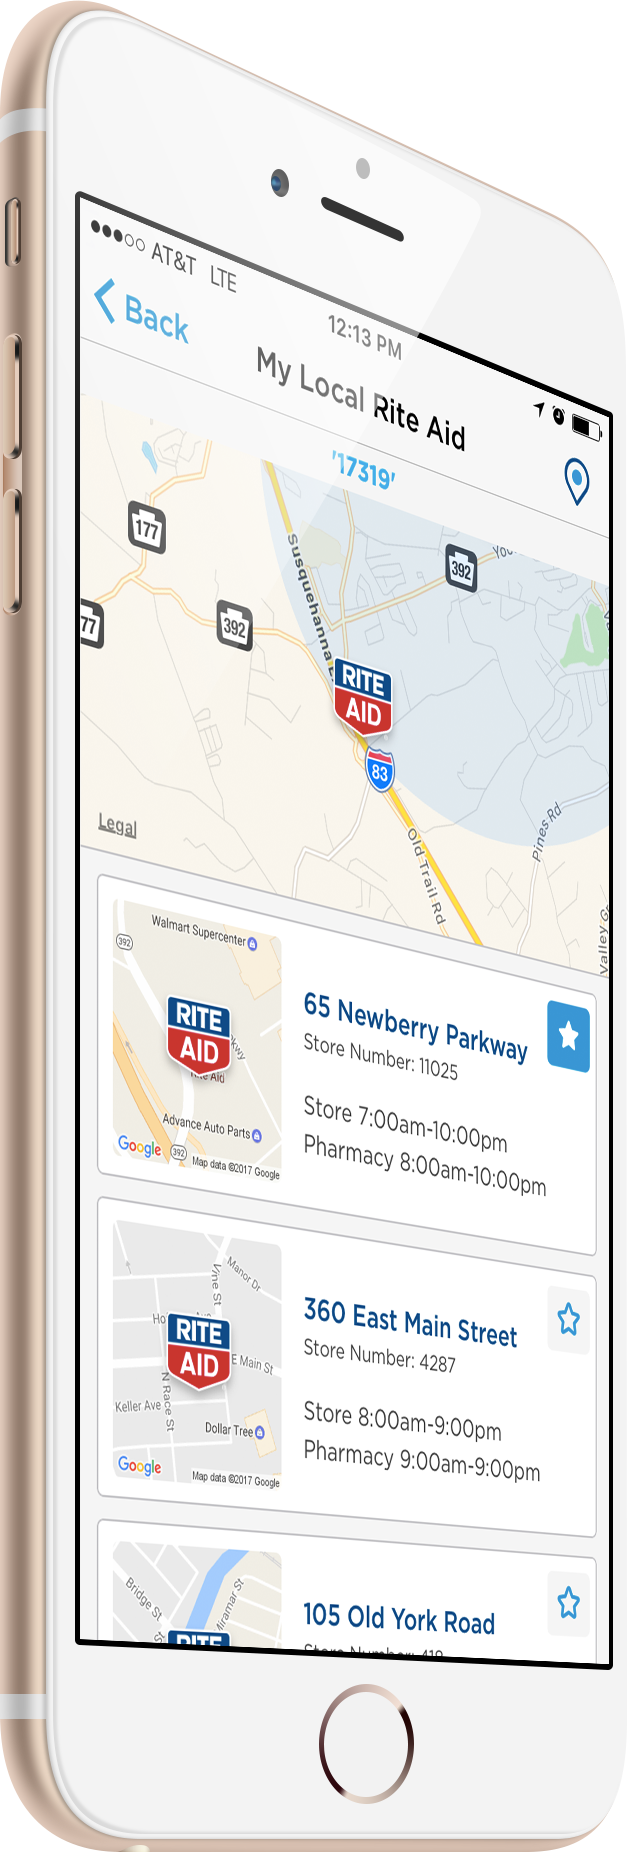 image of iphone with the rite aid mobile app store locator screen displayed